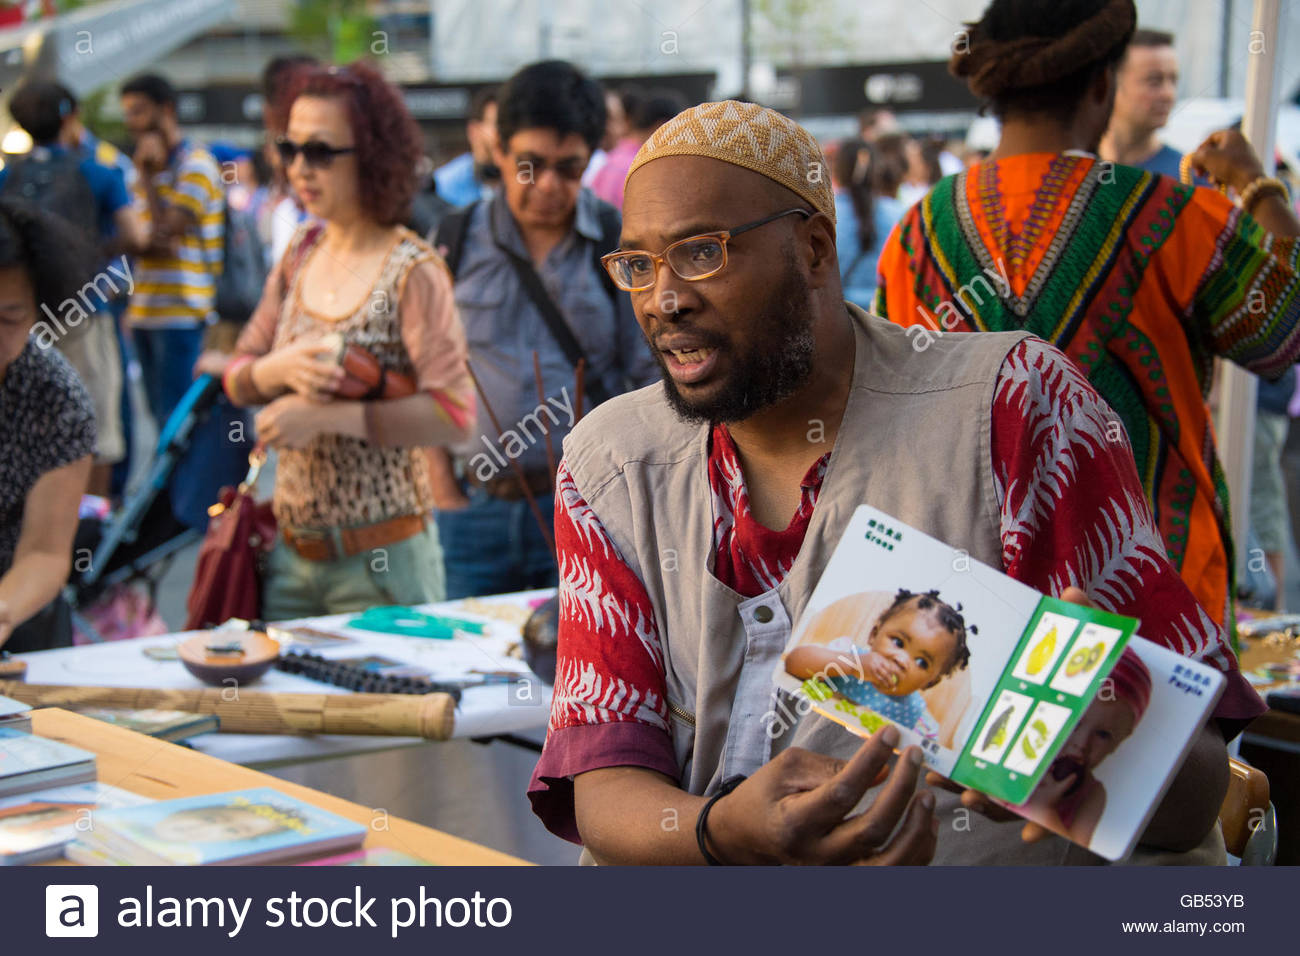 Caribbean People: Multicultural Canada Day Stock Photos & Multicultural